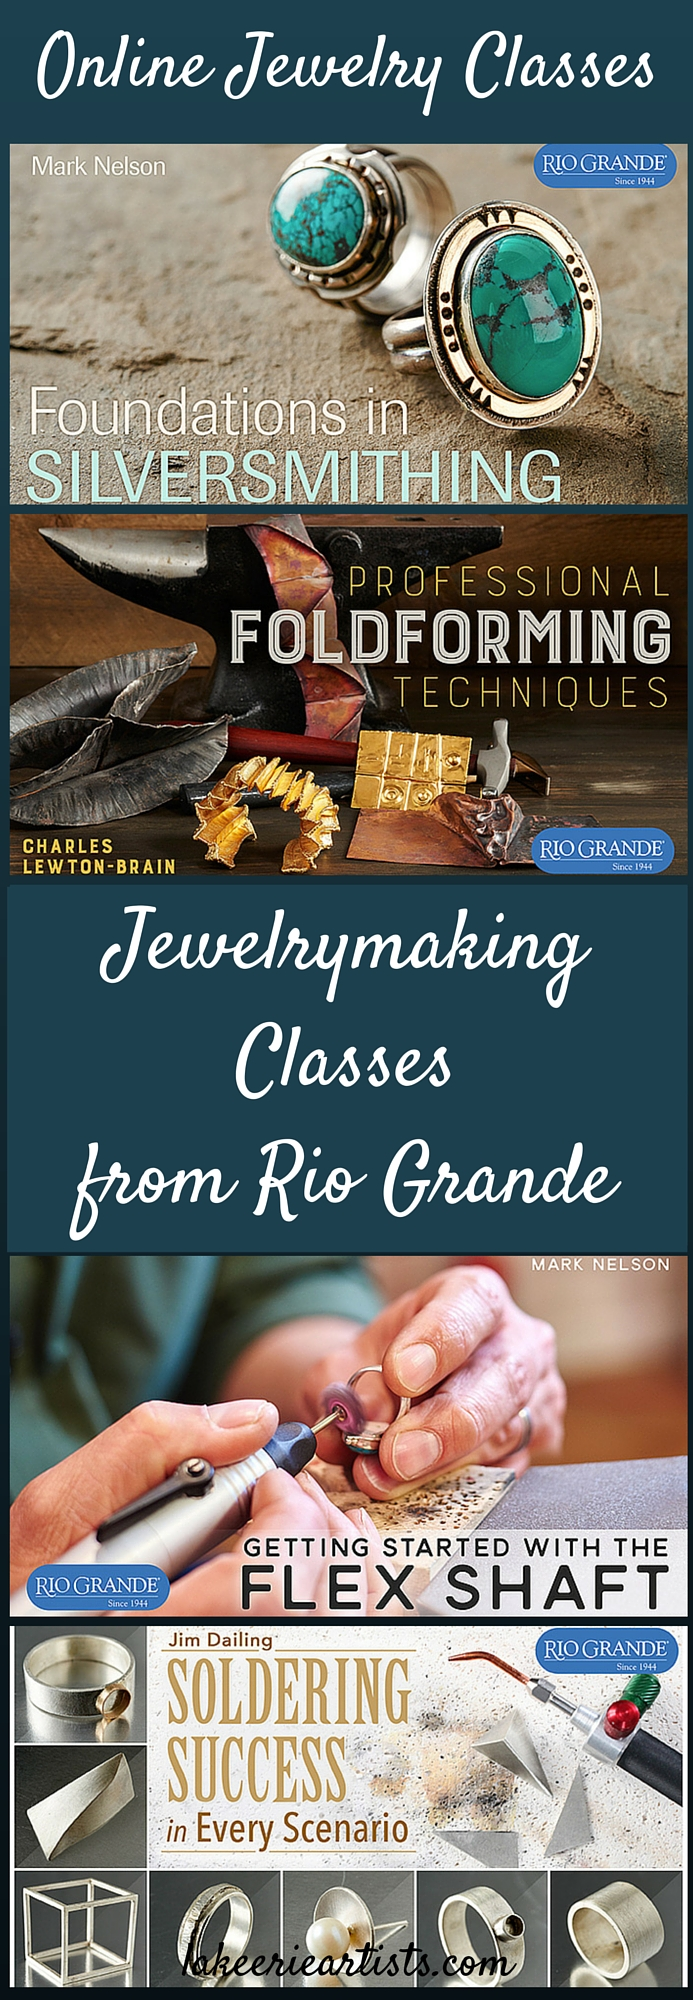 Online Jewelry Classes from Rio Grande